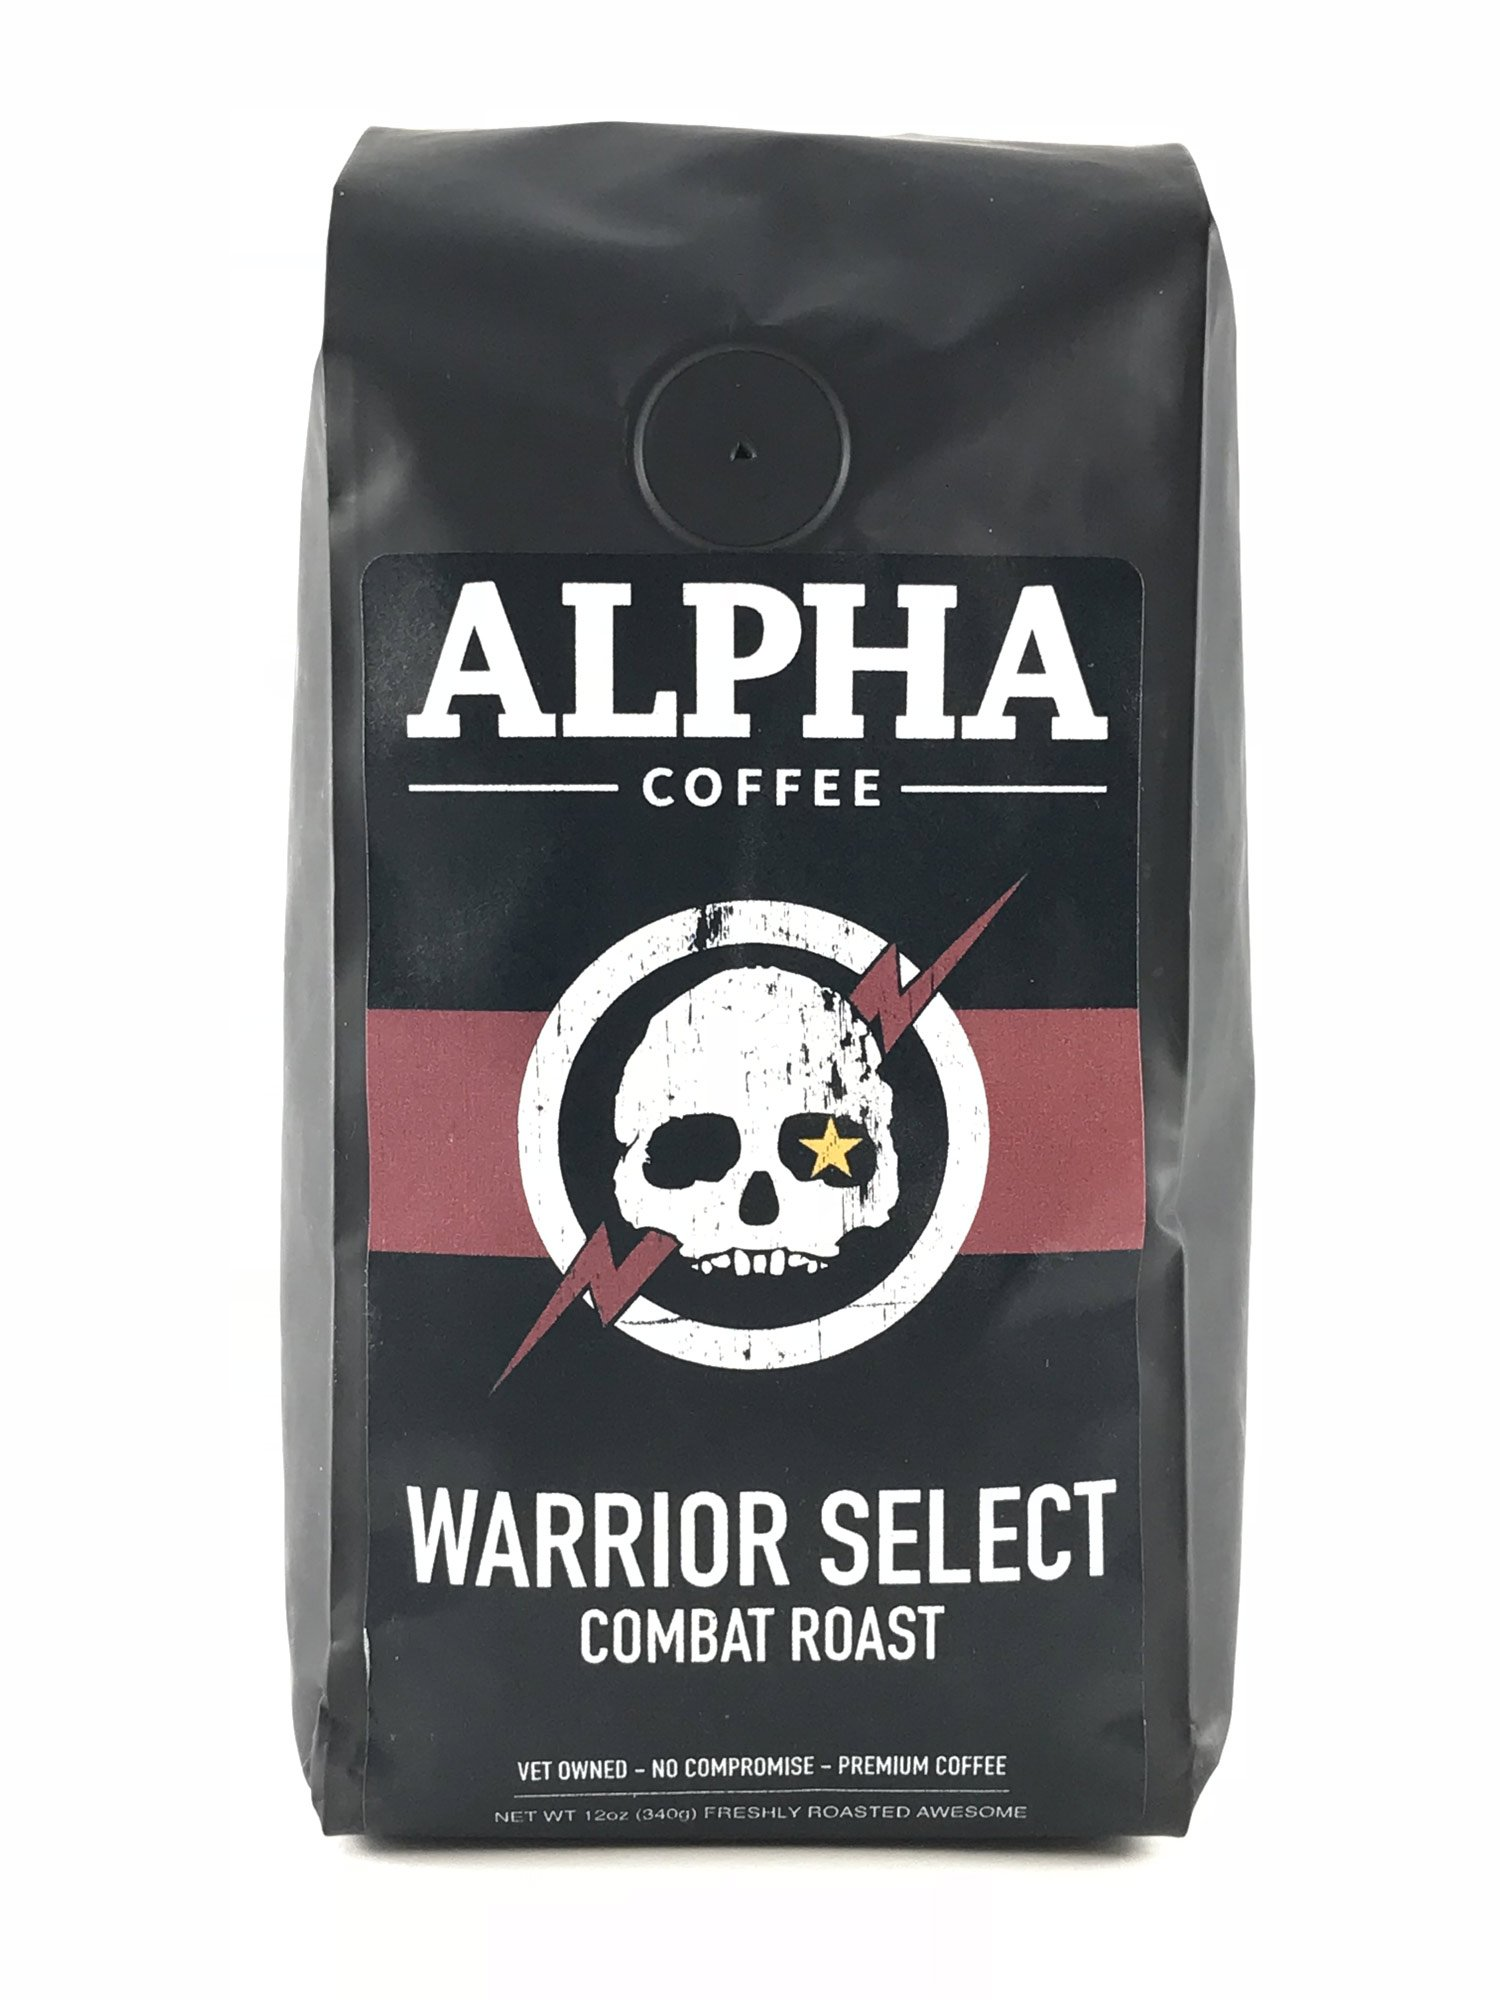 Alpha Coffee, Dark Roast Coffee Beans, 12 oz. Robust Warrior Select Combat Roast, 100% Arabica Coffee, from Central America, Papua New Guinea by BuyCoffee